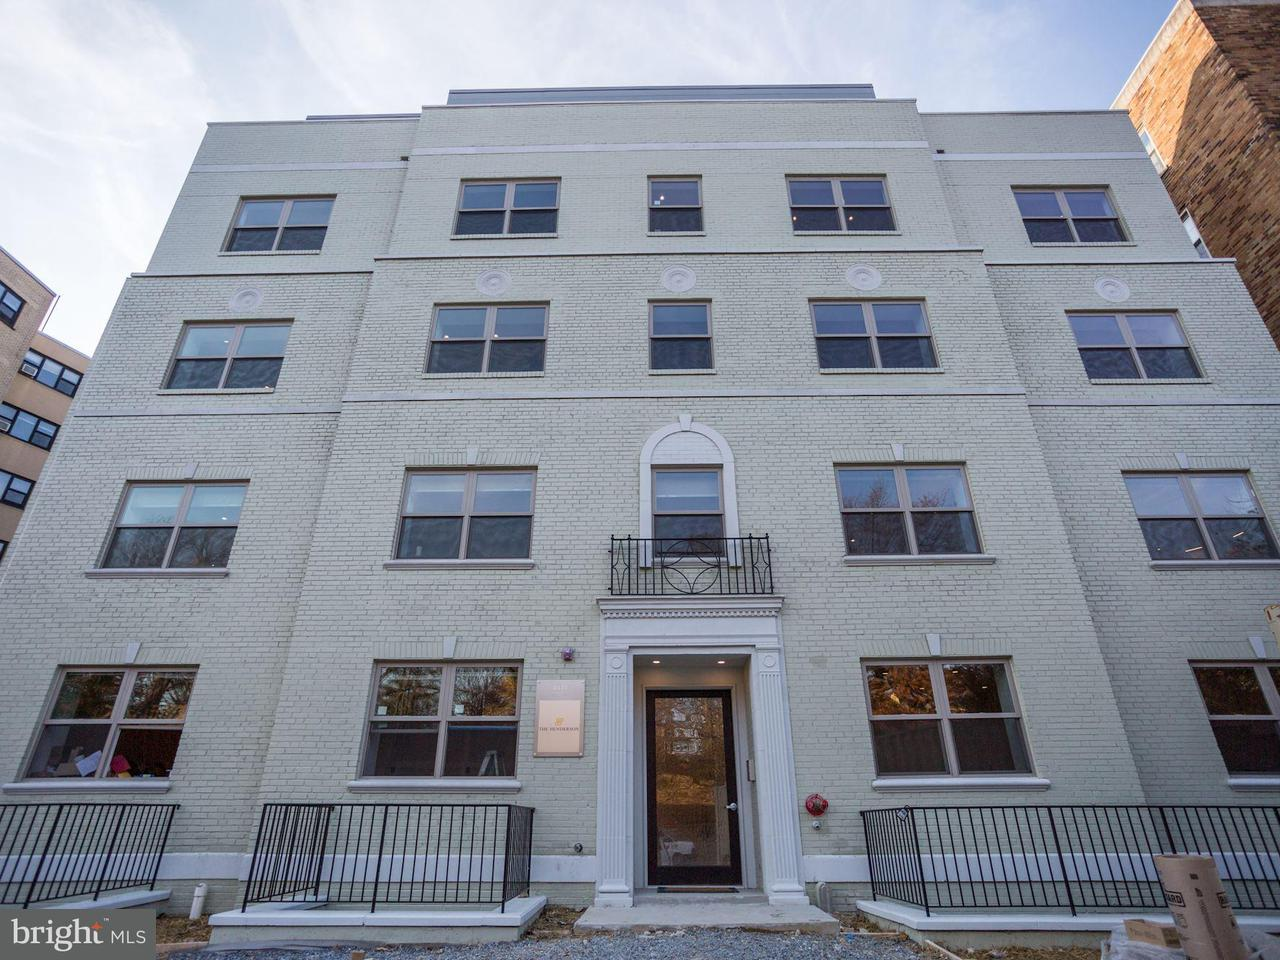 Townhouse for Sale at 2434 16TH ST NW #301 2434 16TH ST NW #301 Washington, District Of Columbia 20009 United States